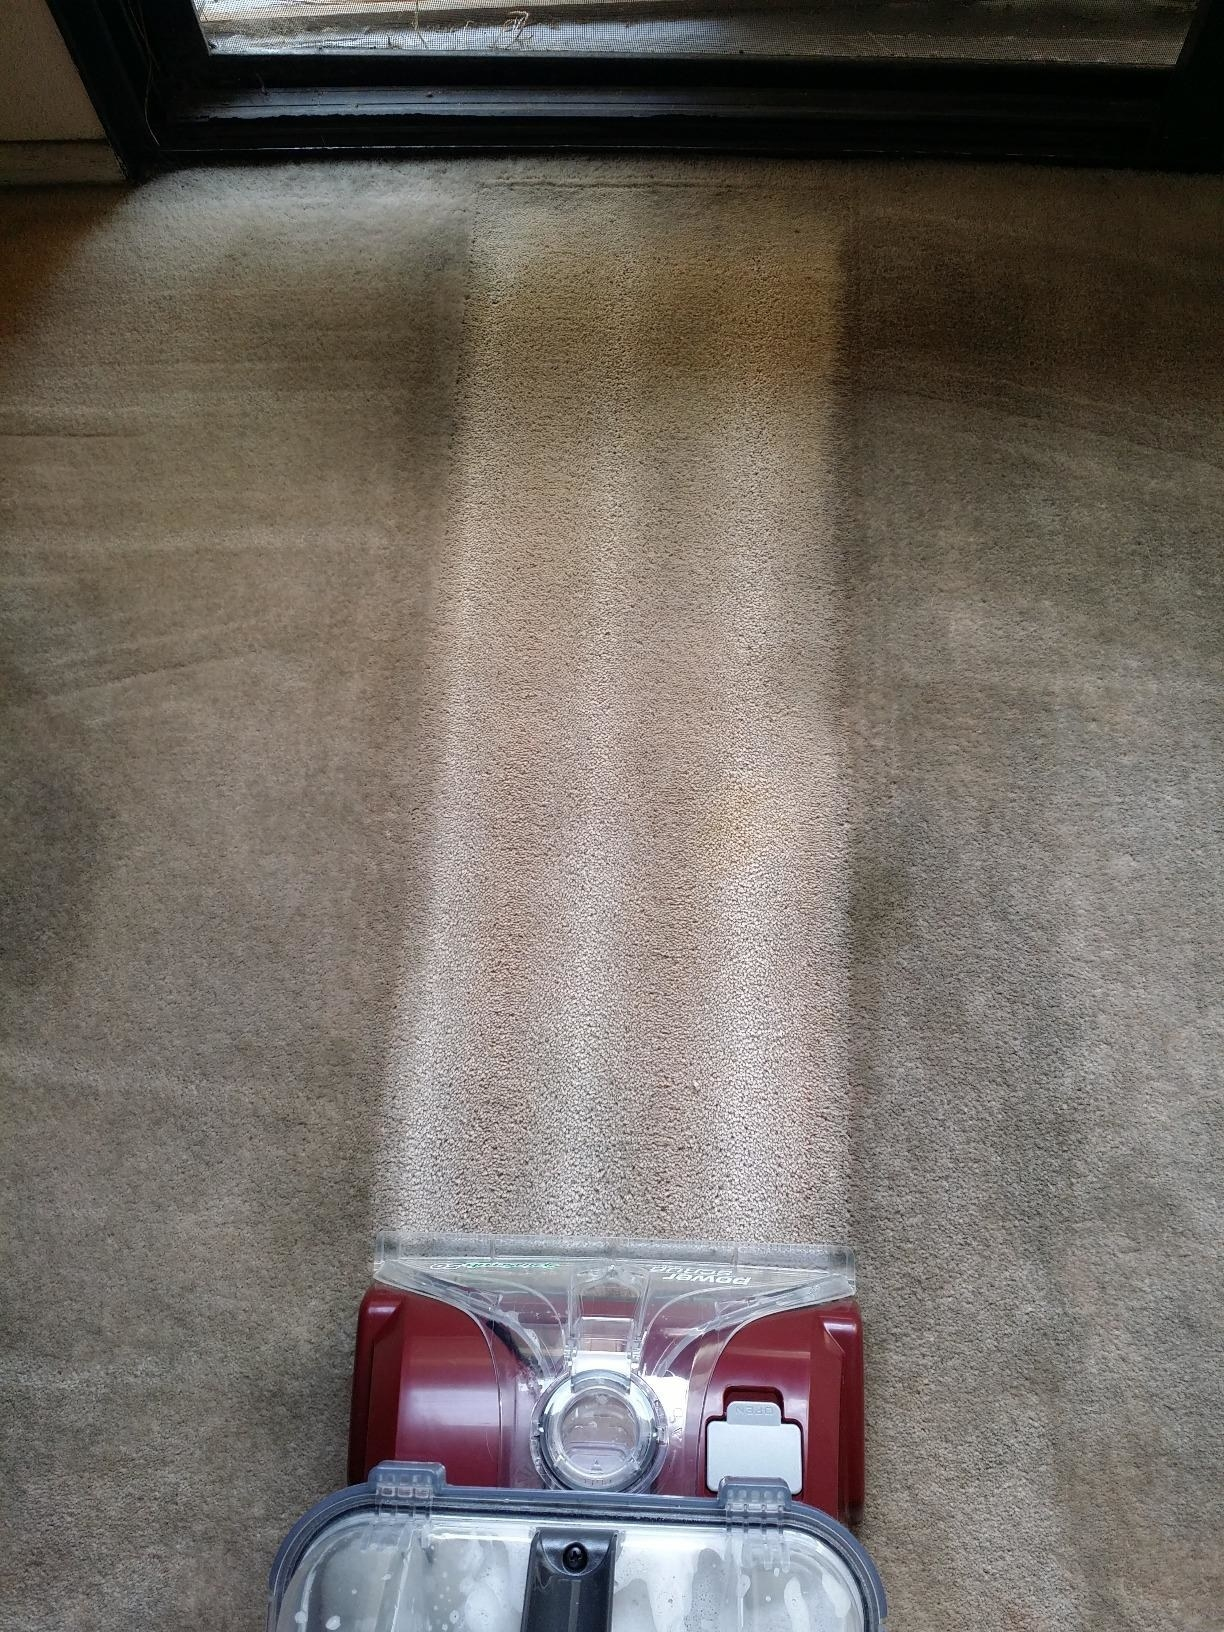 vacuum goes over carpet and leaves a line of clean carpet thats considerably lighter in color